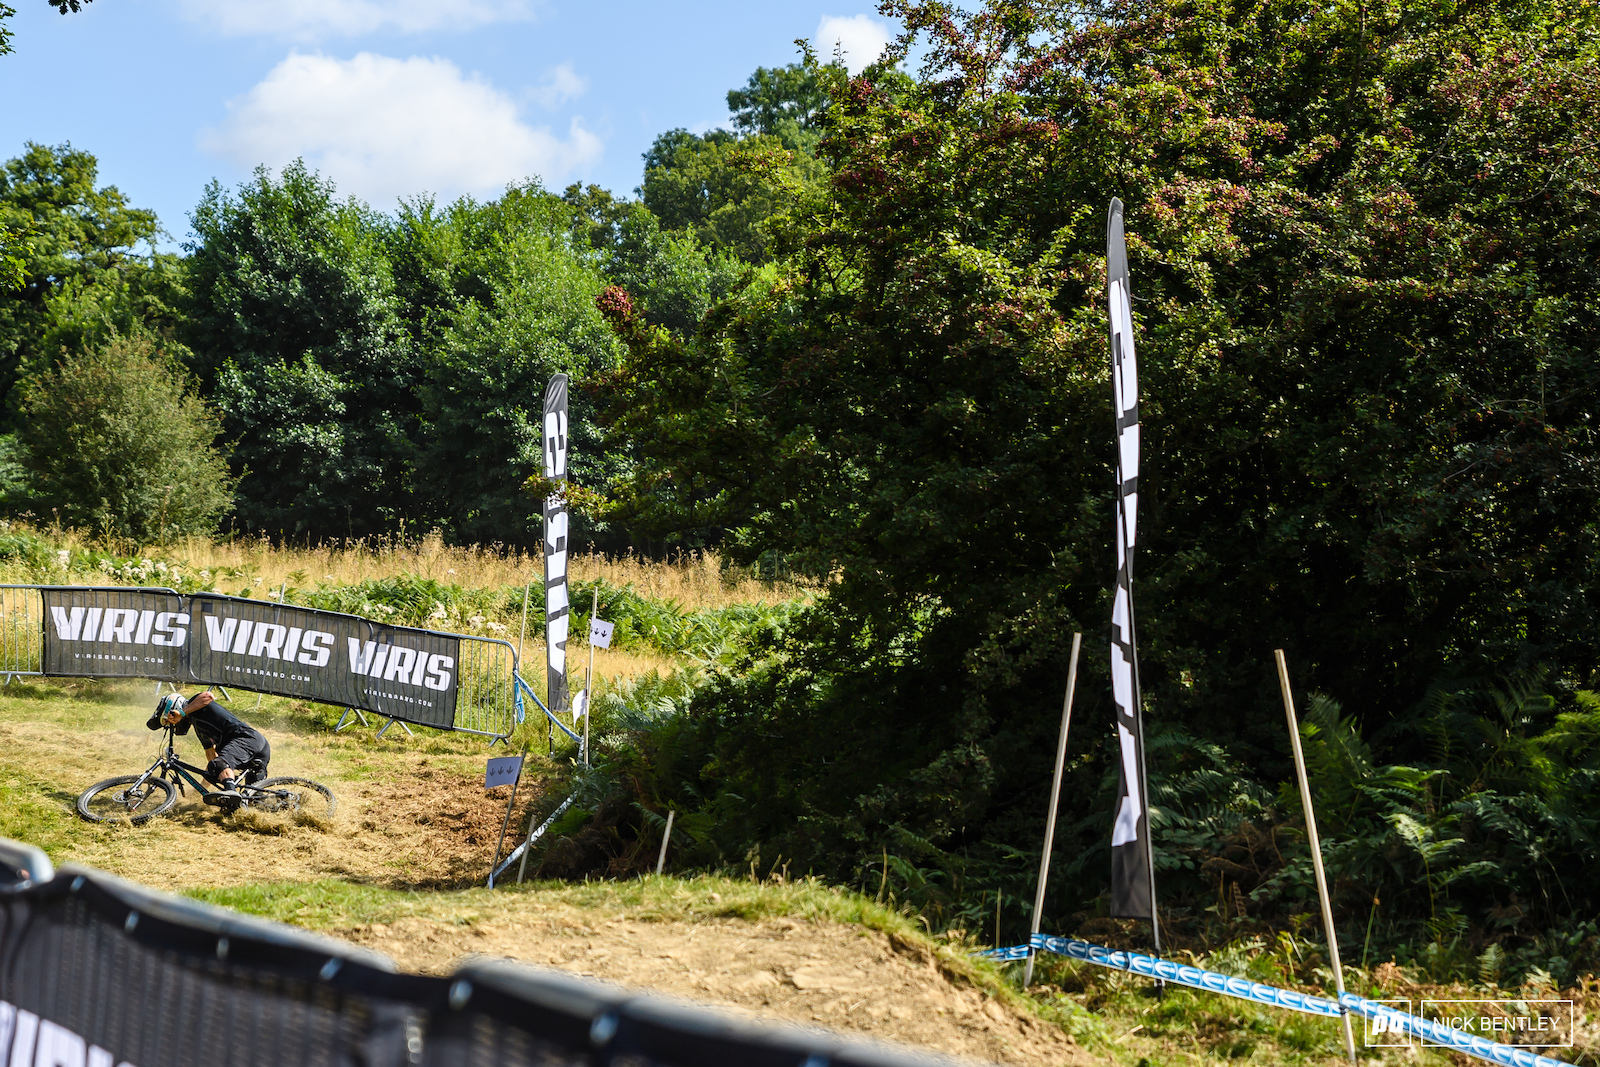 Last time we were at the Malverns Classic the Bomb-Hole was crash central. This year with the track change the grassy turn before it provided the crash entertainment